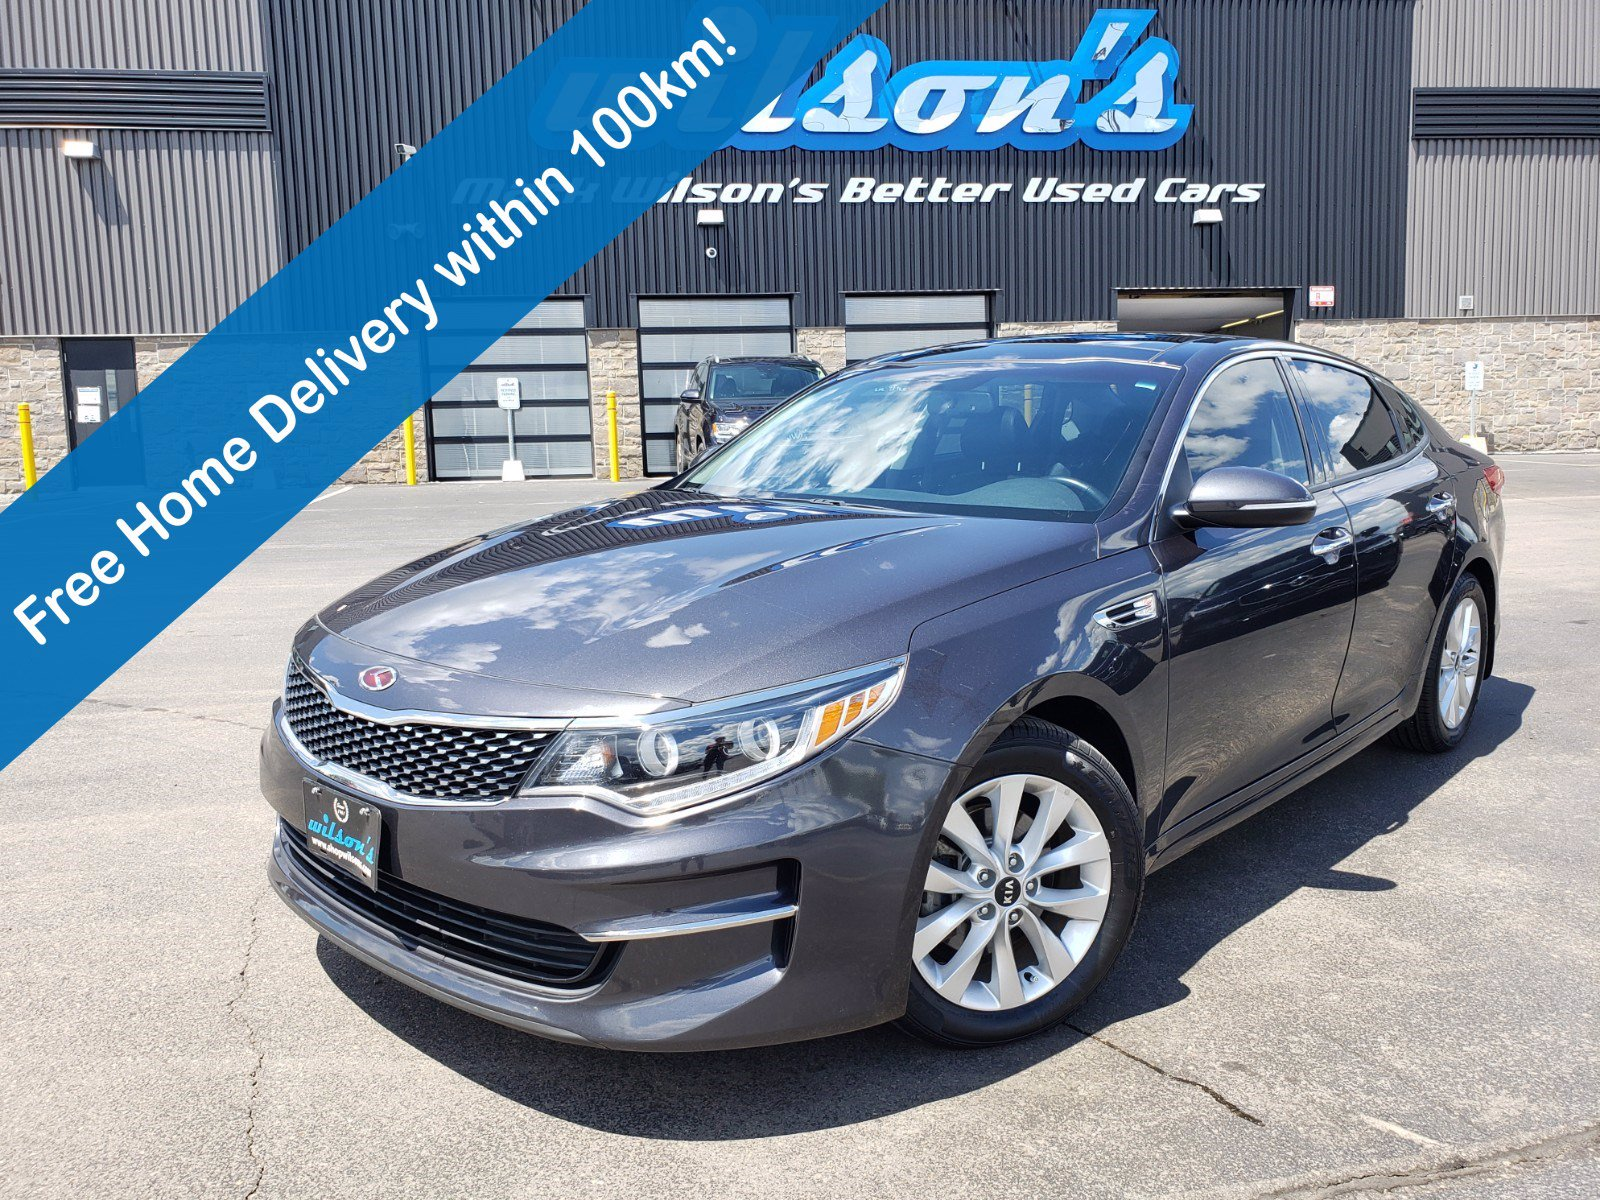 Certified Pre-Owned 2016 Kia Optima EX, Leather, Navigation, Sunroof, New Tires, Heated + Cooled Seat, Rear Camera, Mem Seat, Bluetooth